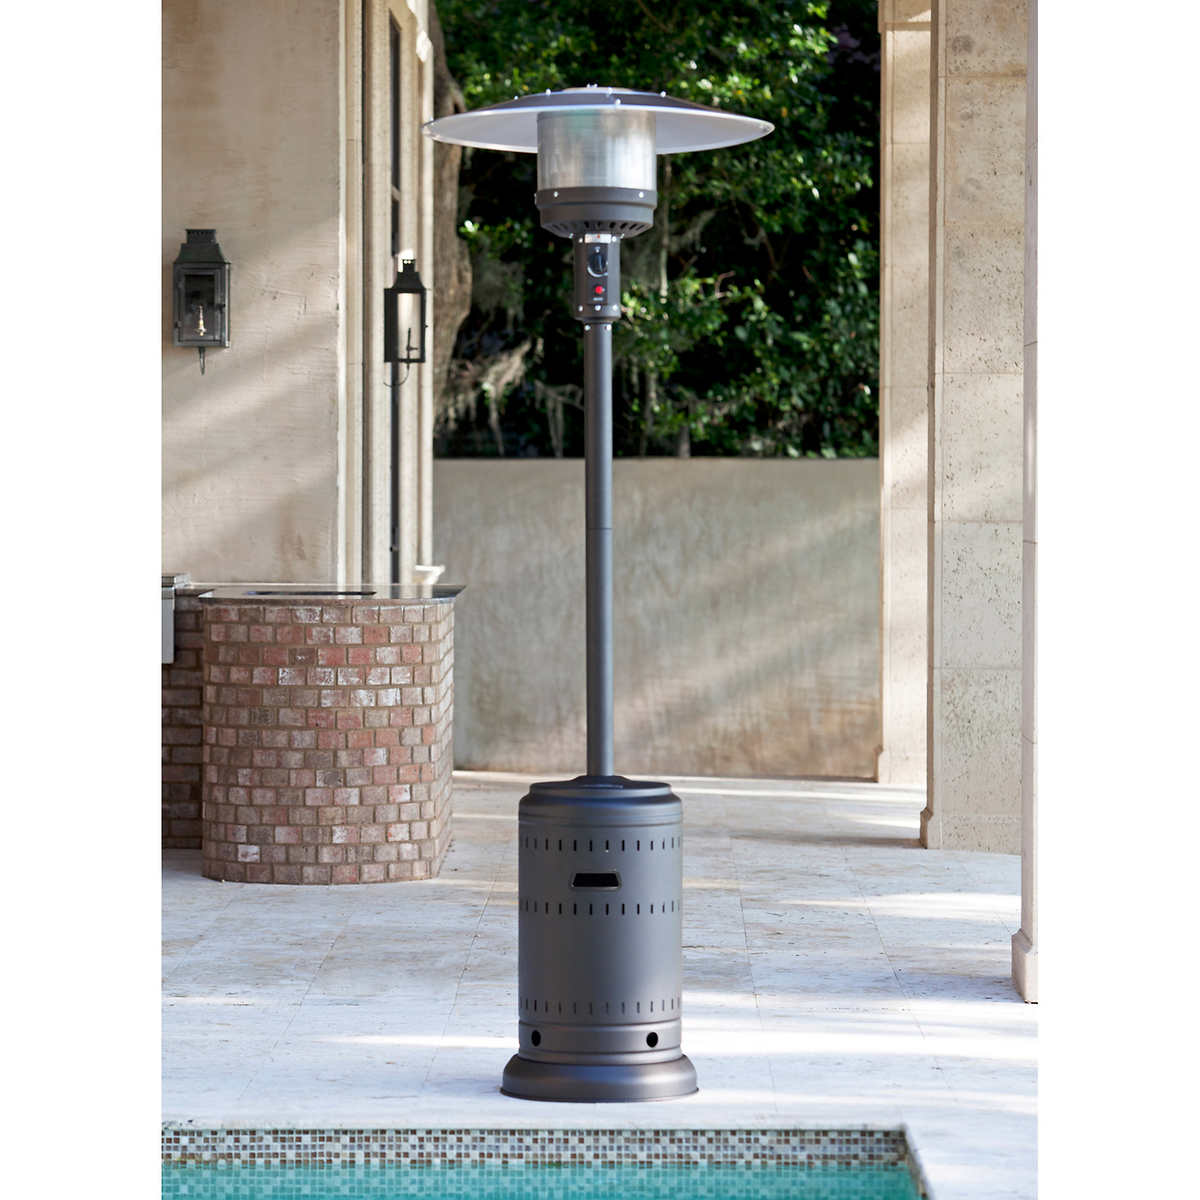 heaters working heater reviews propane costco manual lowes outdoor gardensun patio not